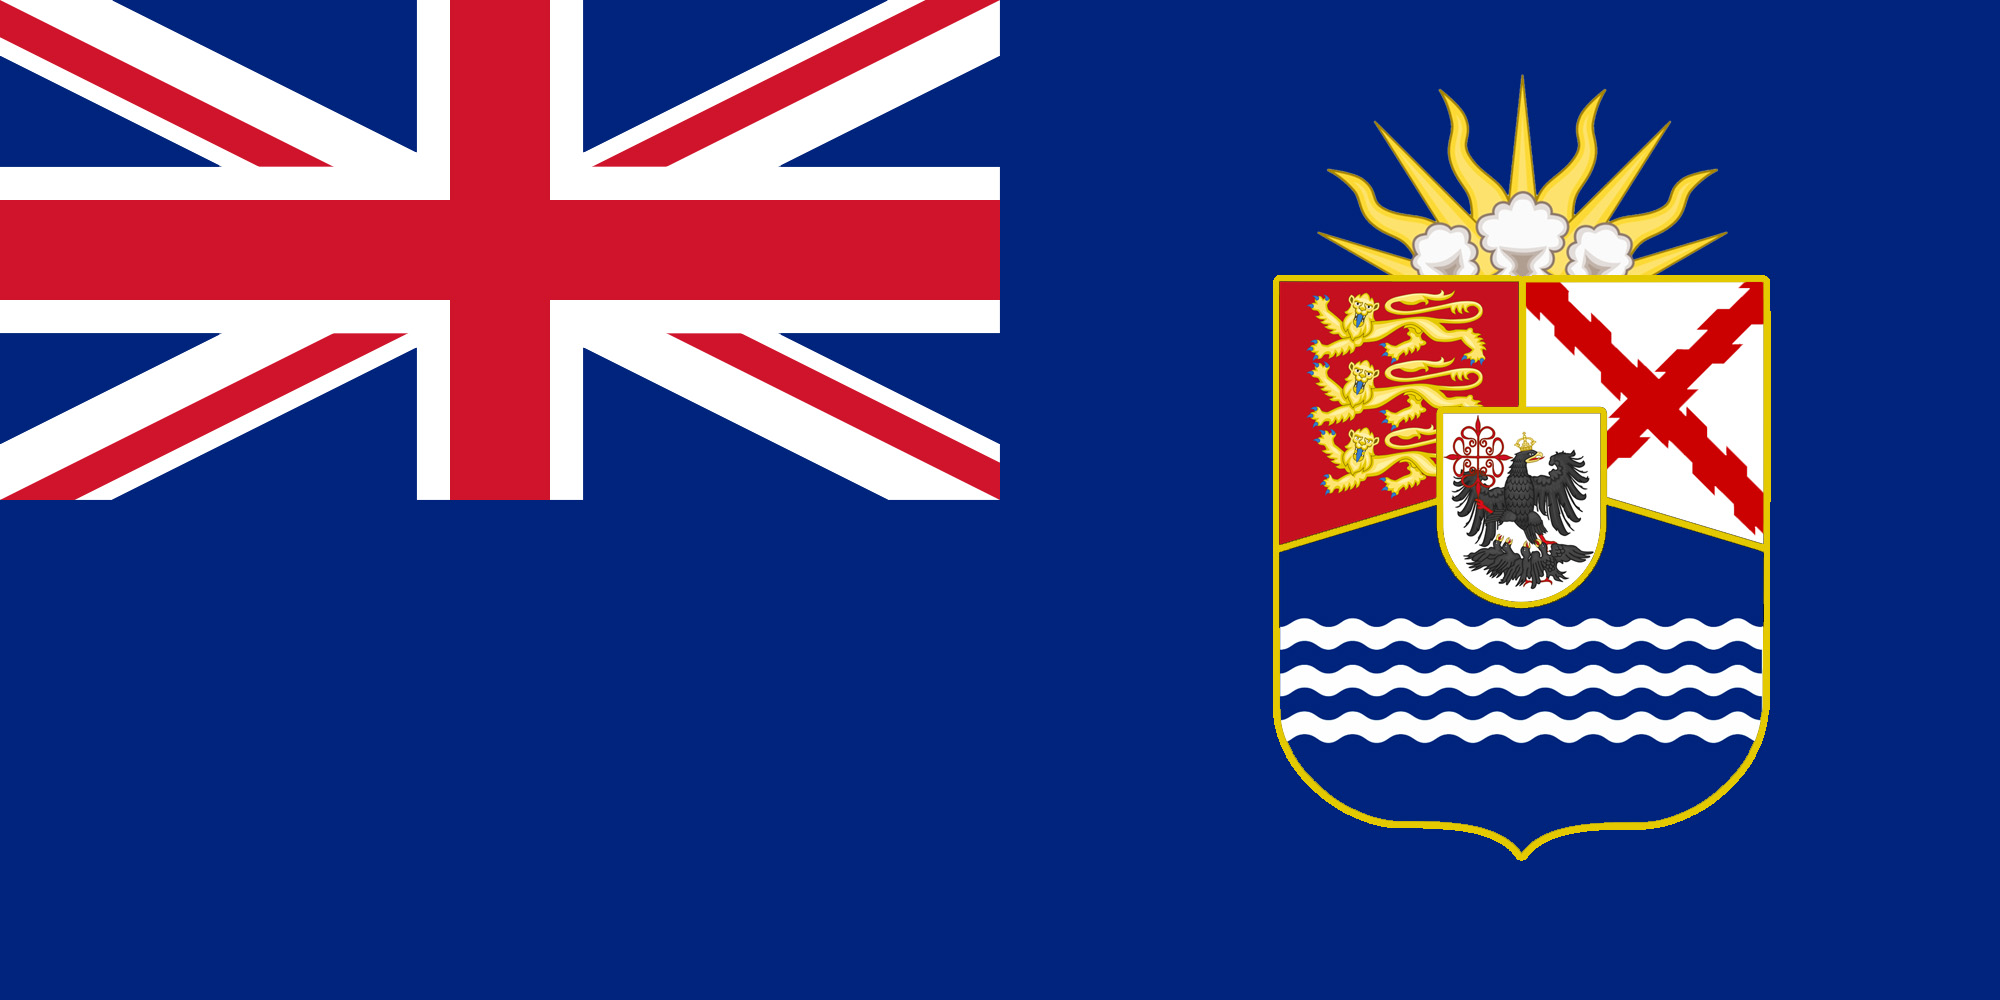 plate colony ensign.jpg